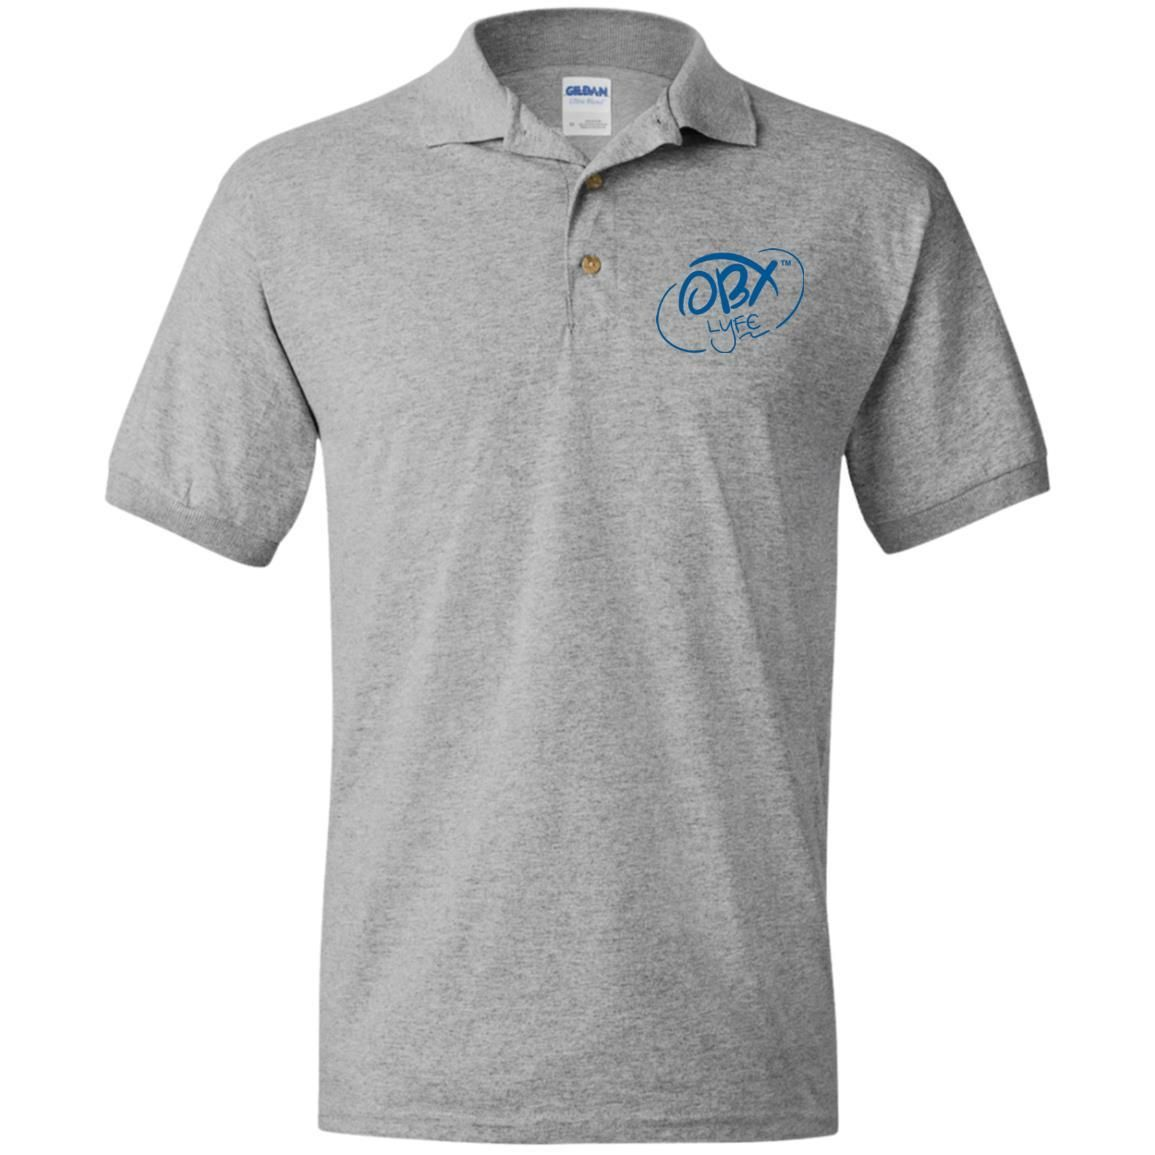 Ocean Blue OBX Lyfe Jersey Polo Shirt in 10 Colors